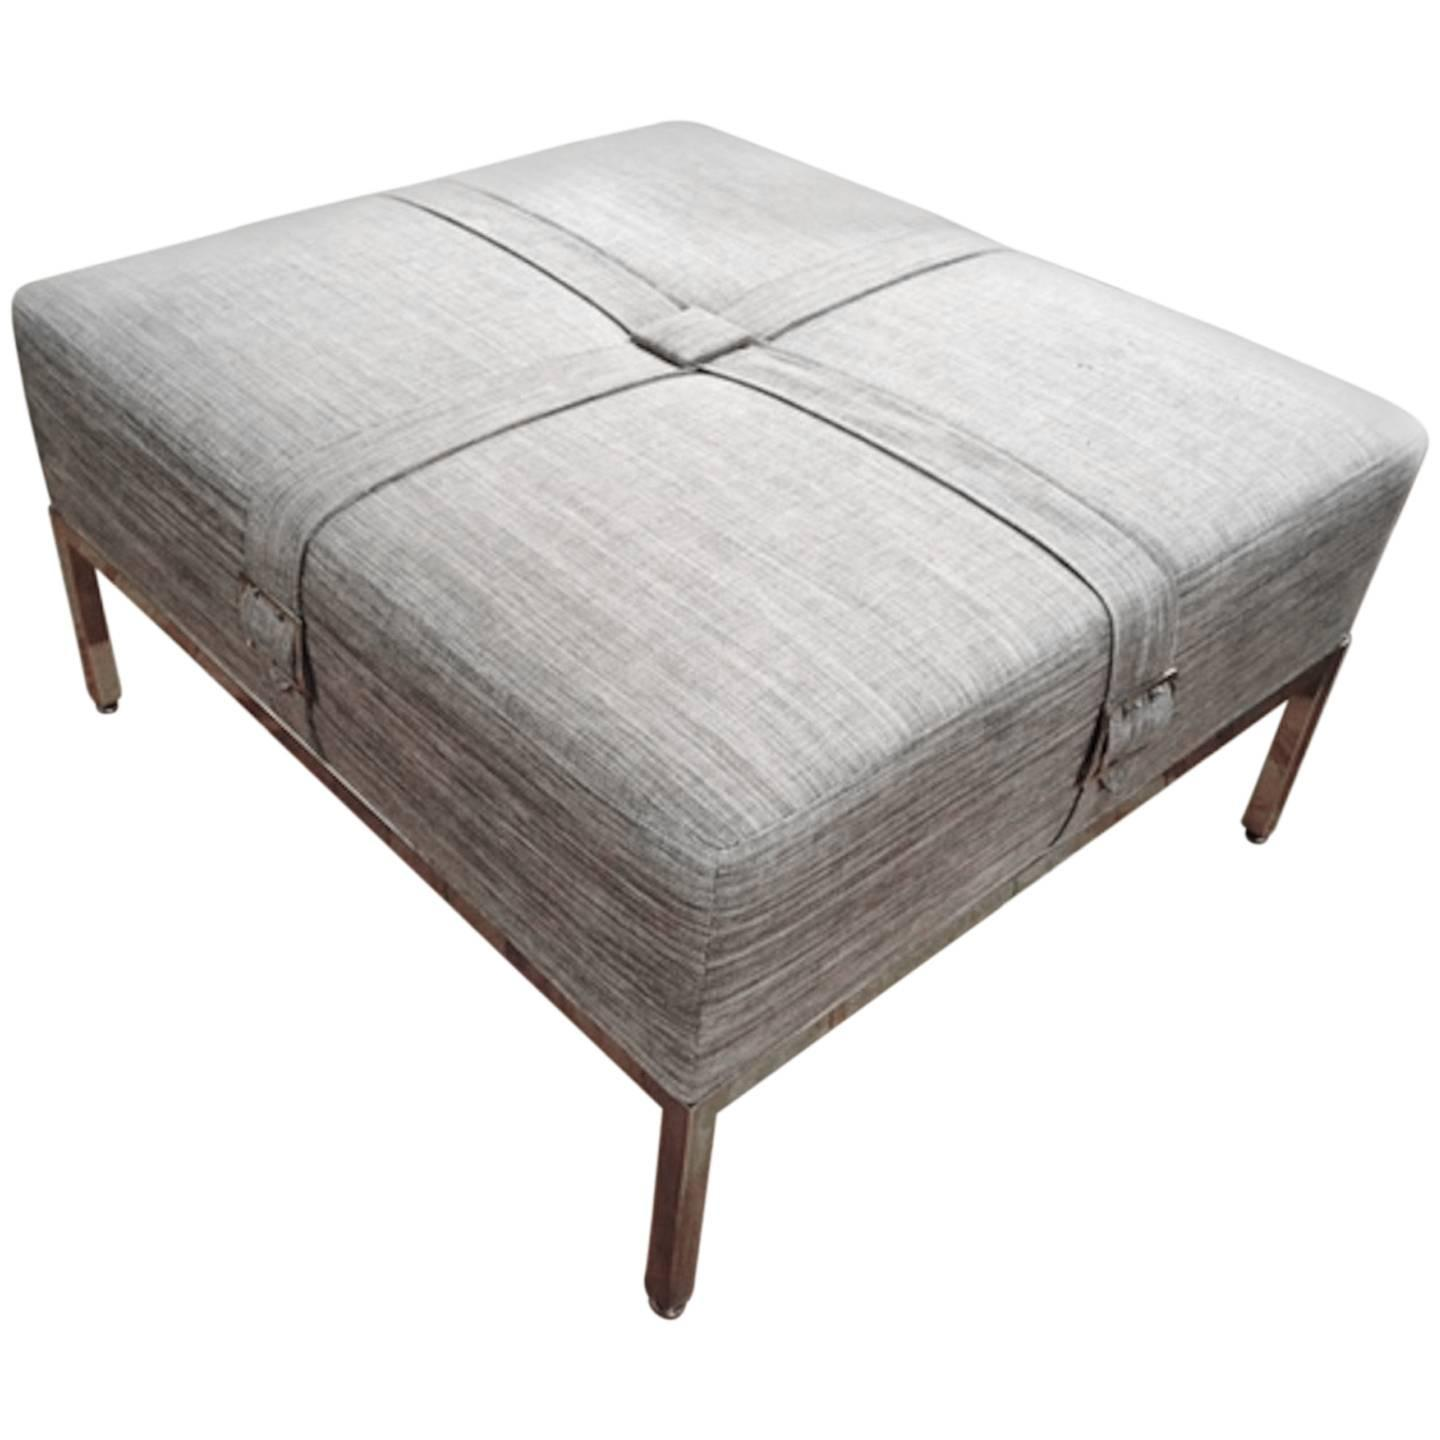 thayer coggin ottoman for sale at 1stdibs. Black Bedroom Furniture Sets. Home Design Ideas